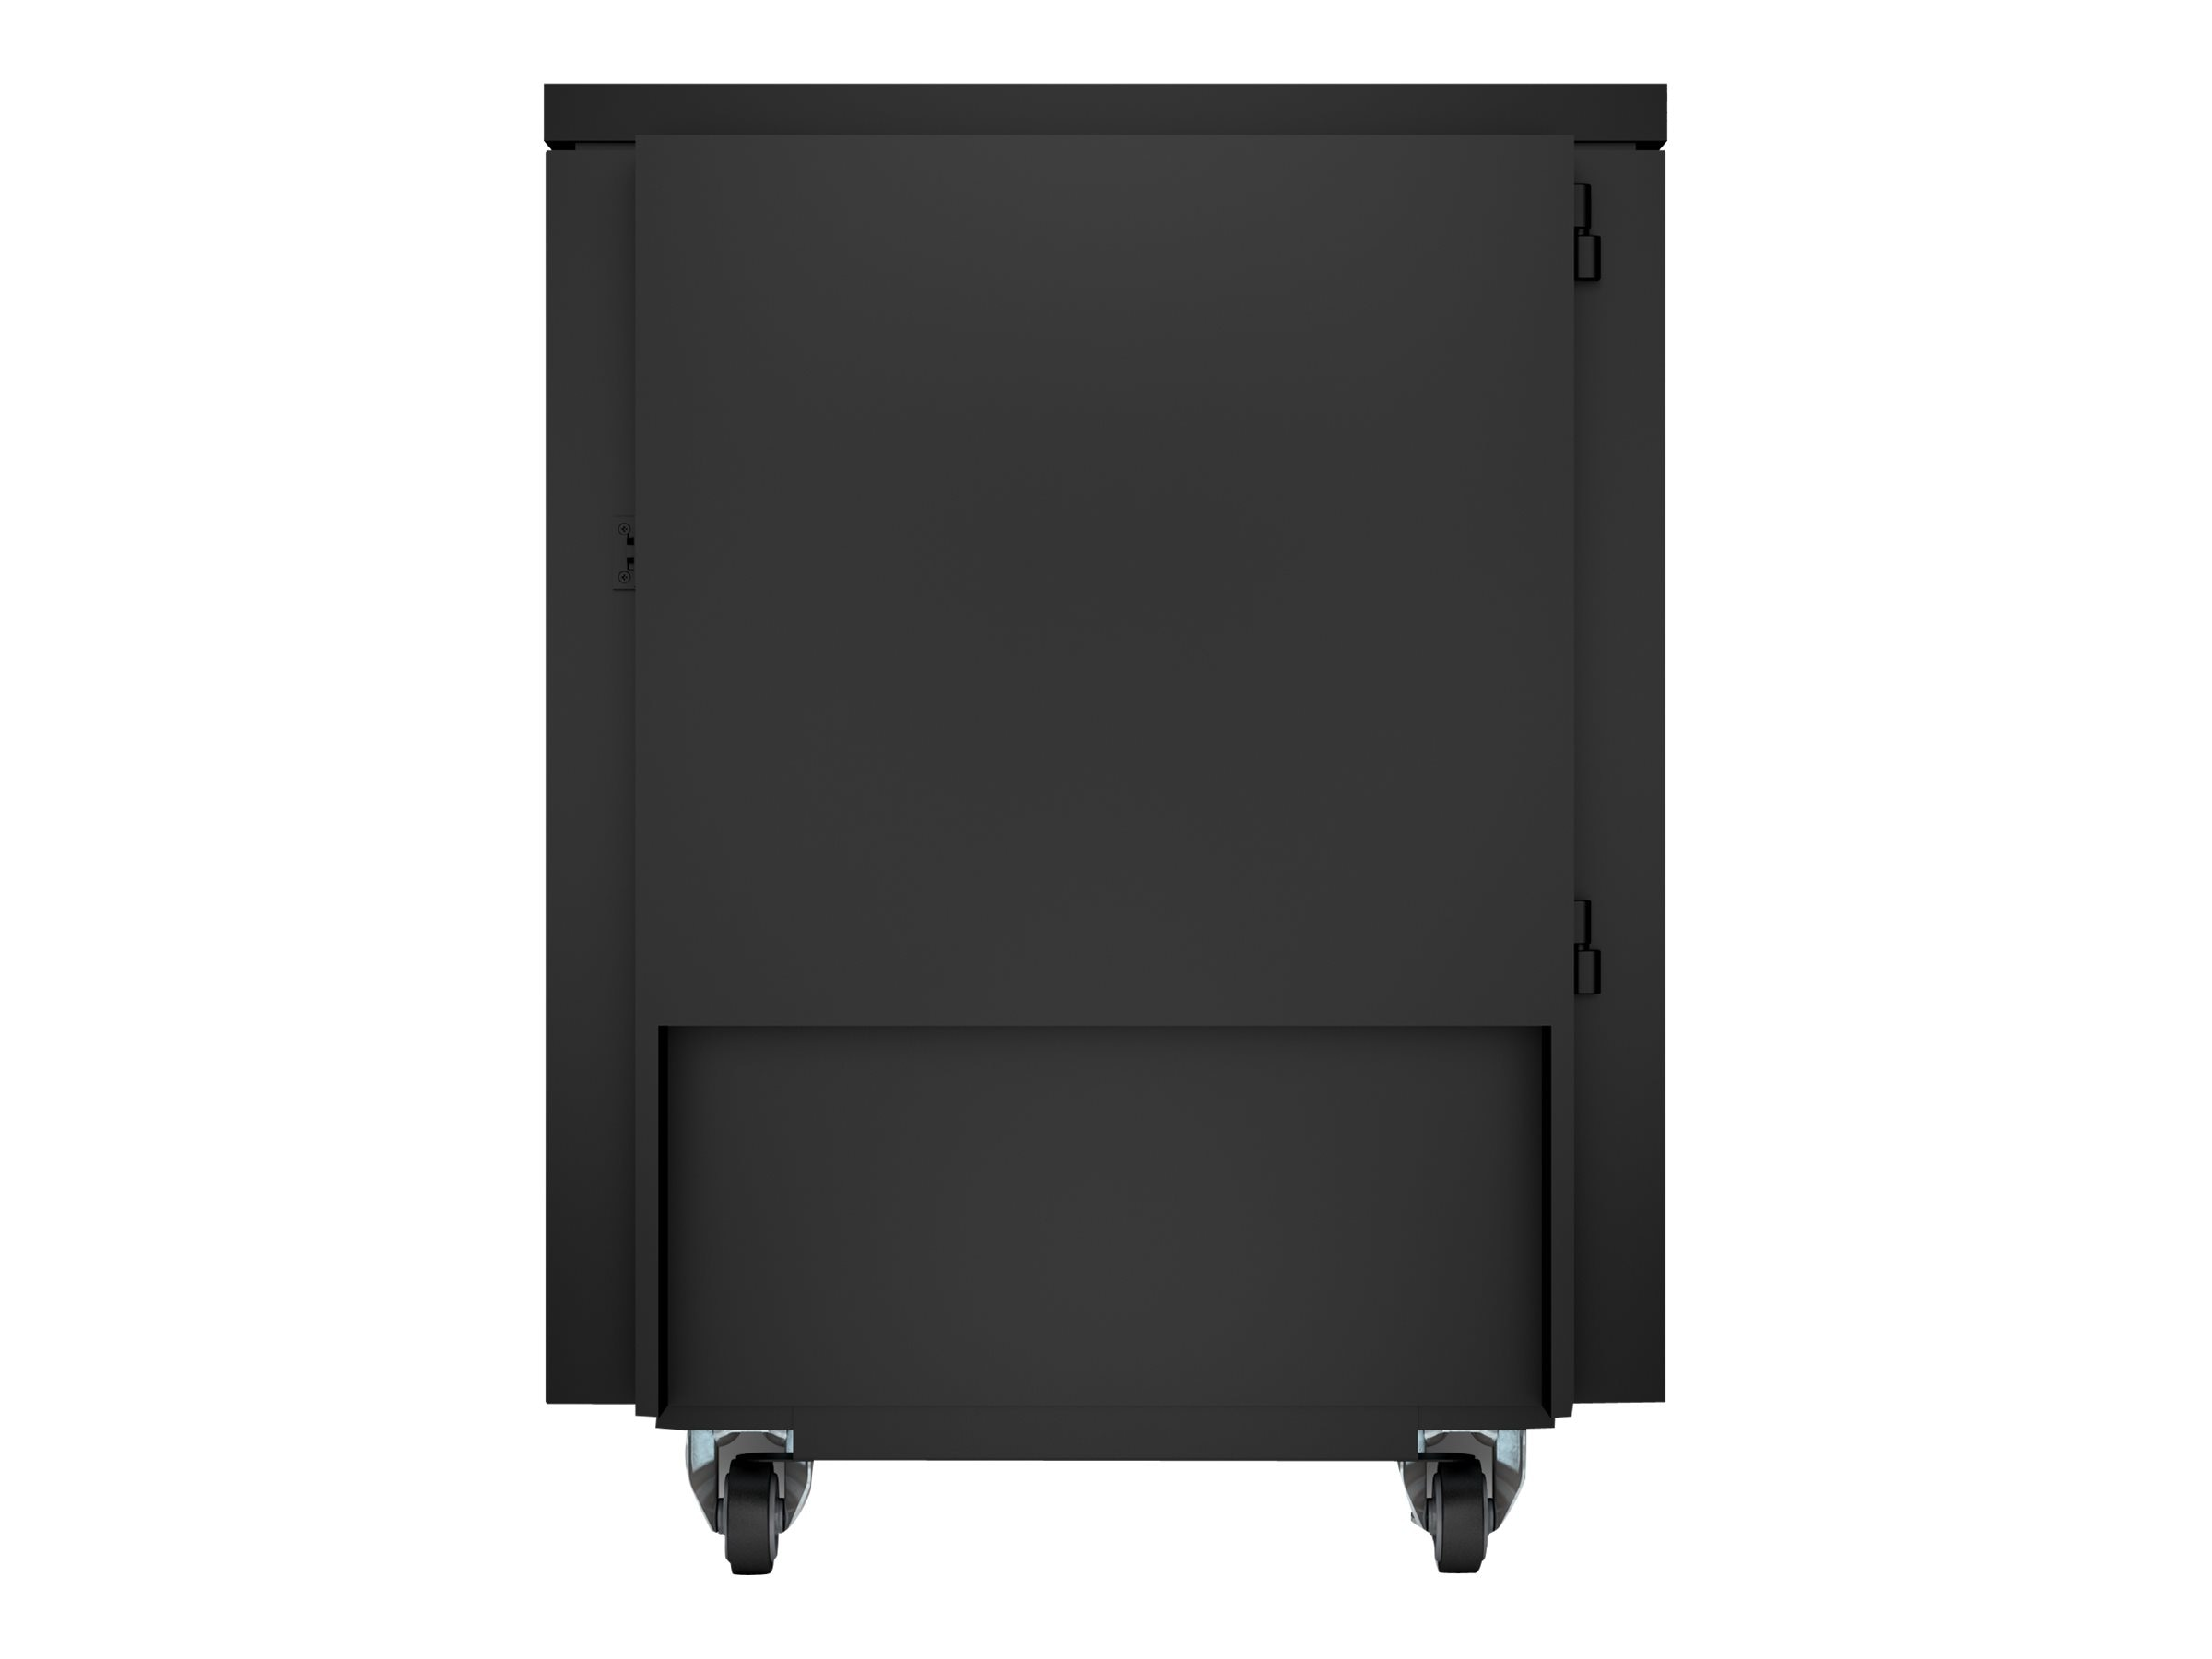 APC Netshelter CX 18U 750mm x 1130mm Enclosure, Black Finish, AR4018X429